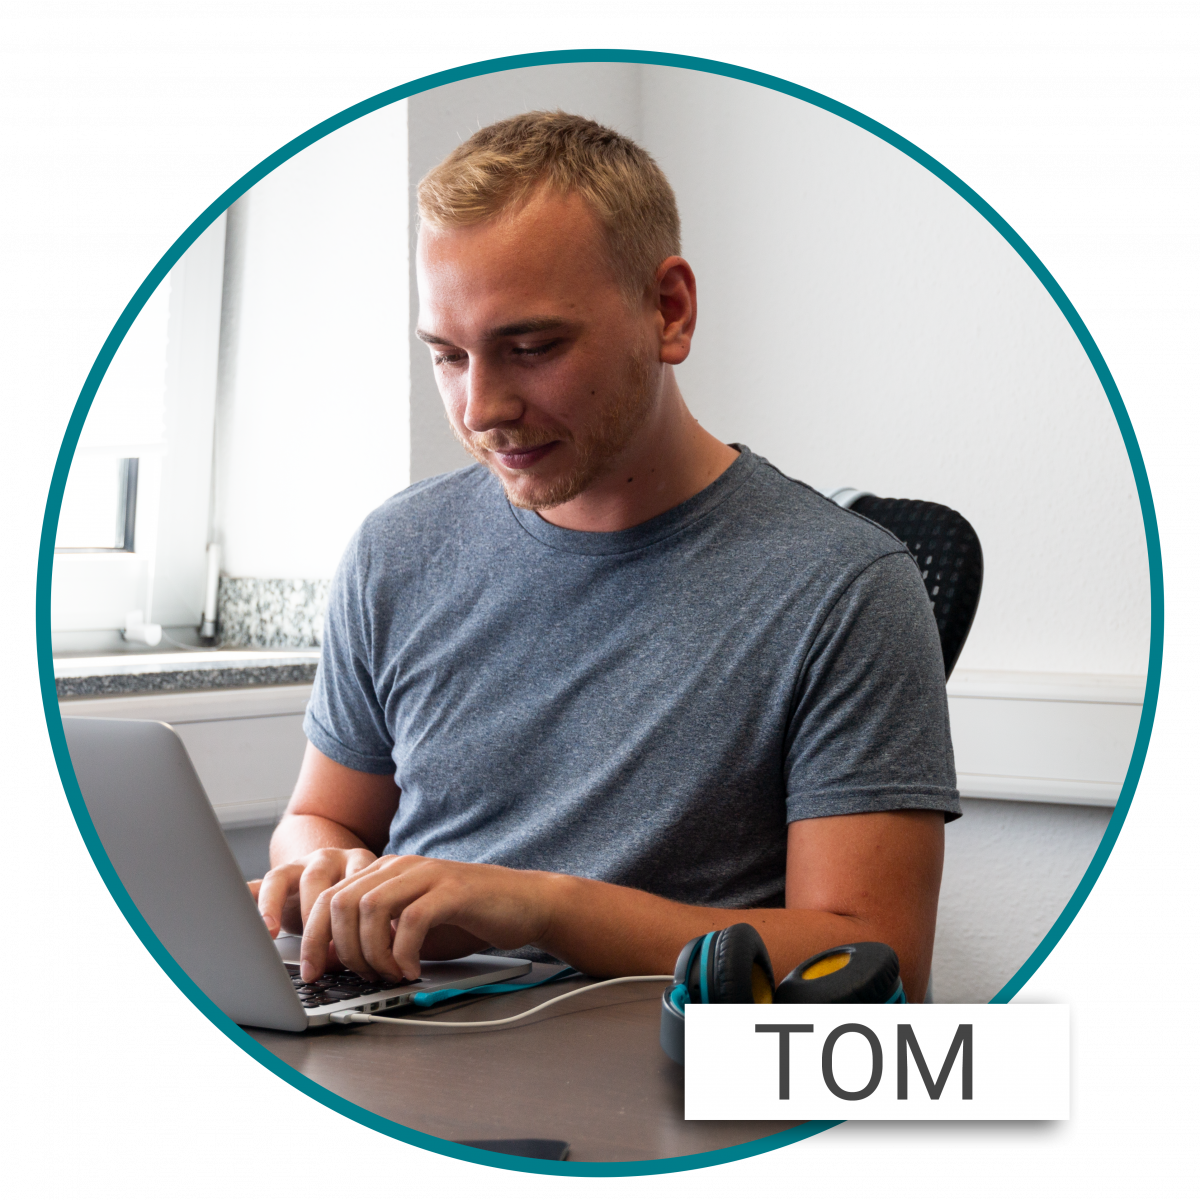 Traineeship Online Marketing Manager Tom